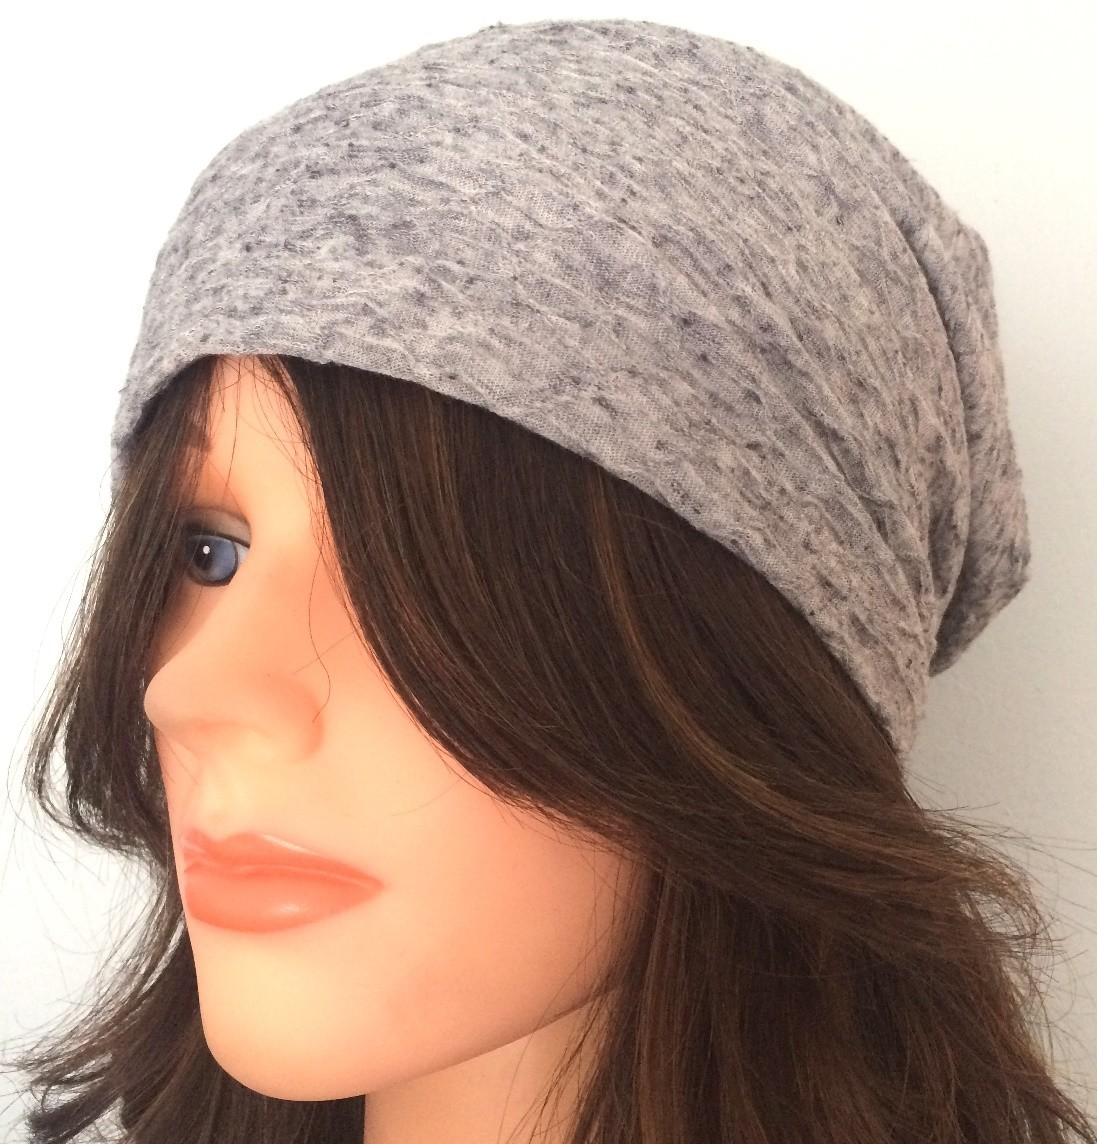 Light gray summer slouch textured pattern.